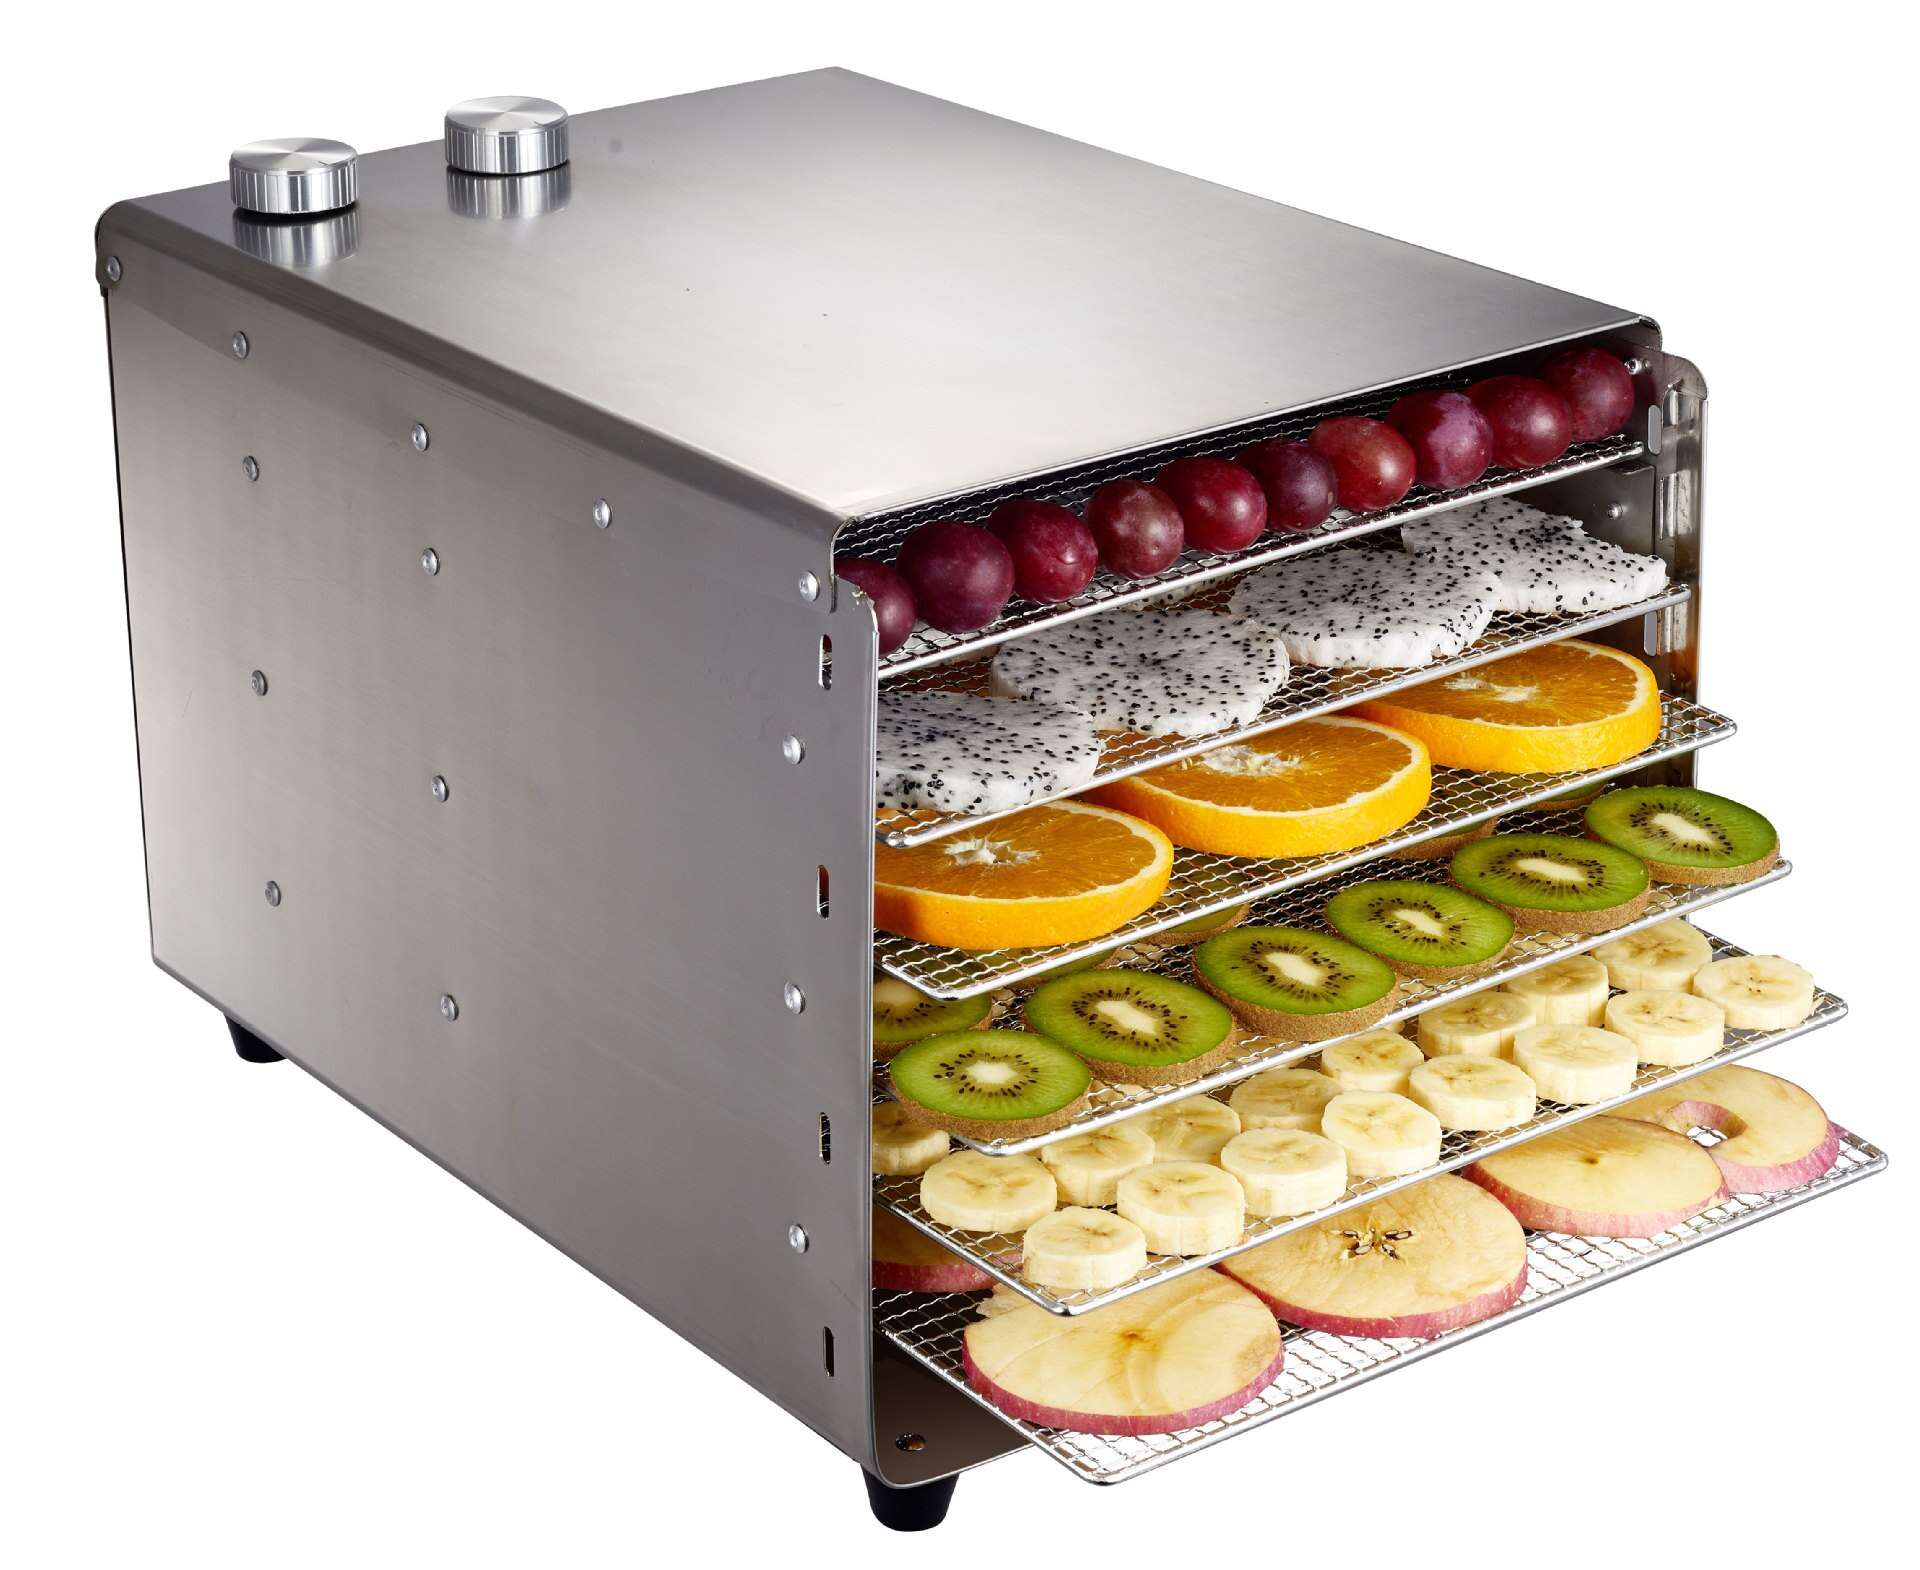 SEPTREE 6 Layers Stainless Steel Food Dehydrator for Mushroom Fruit Vegetable Dryer Meat Machine Home Commercial Snacks Drying